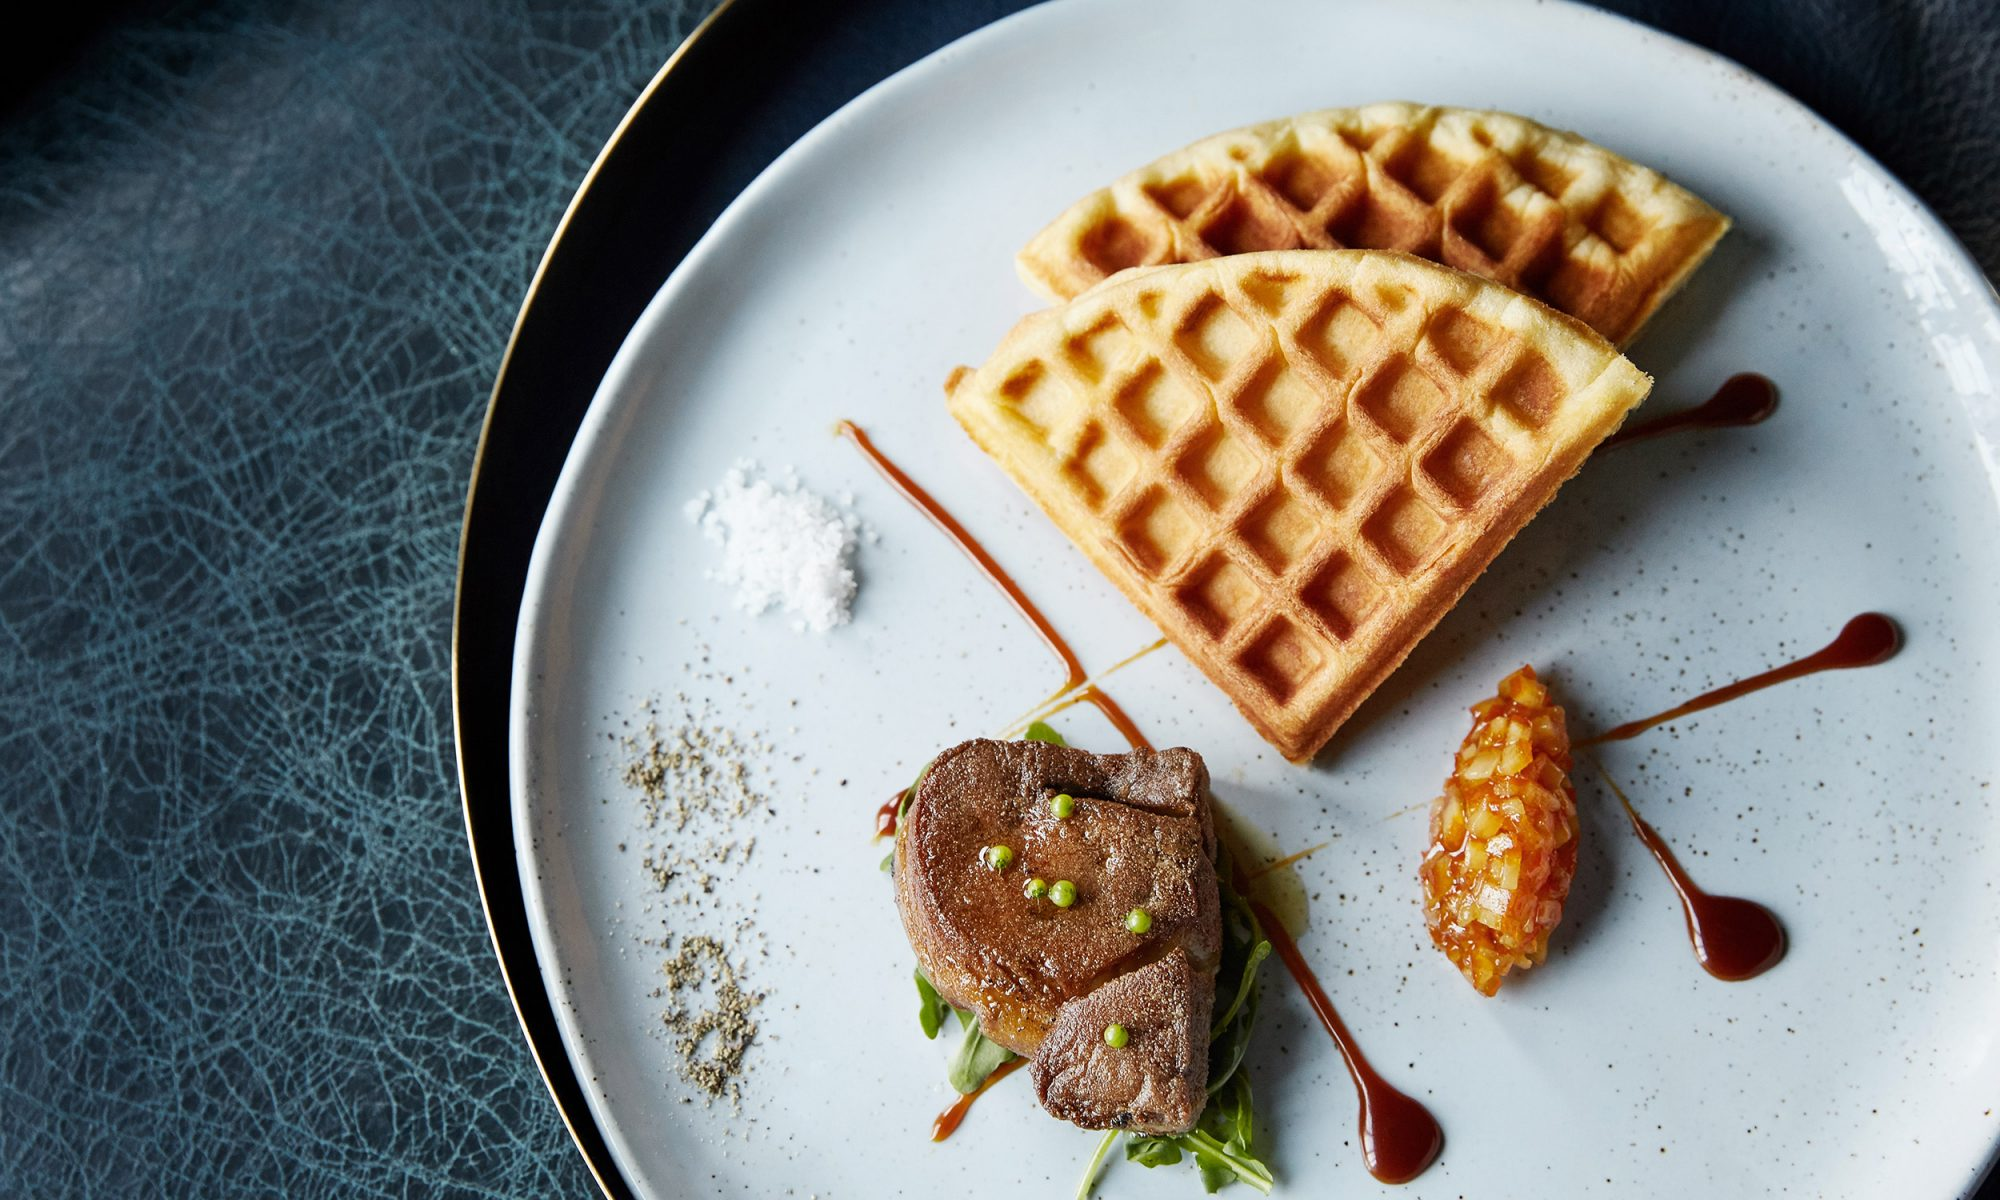 Foie Gras and Waffles Co-Star in an Offaly Glamorous Brunch